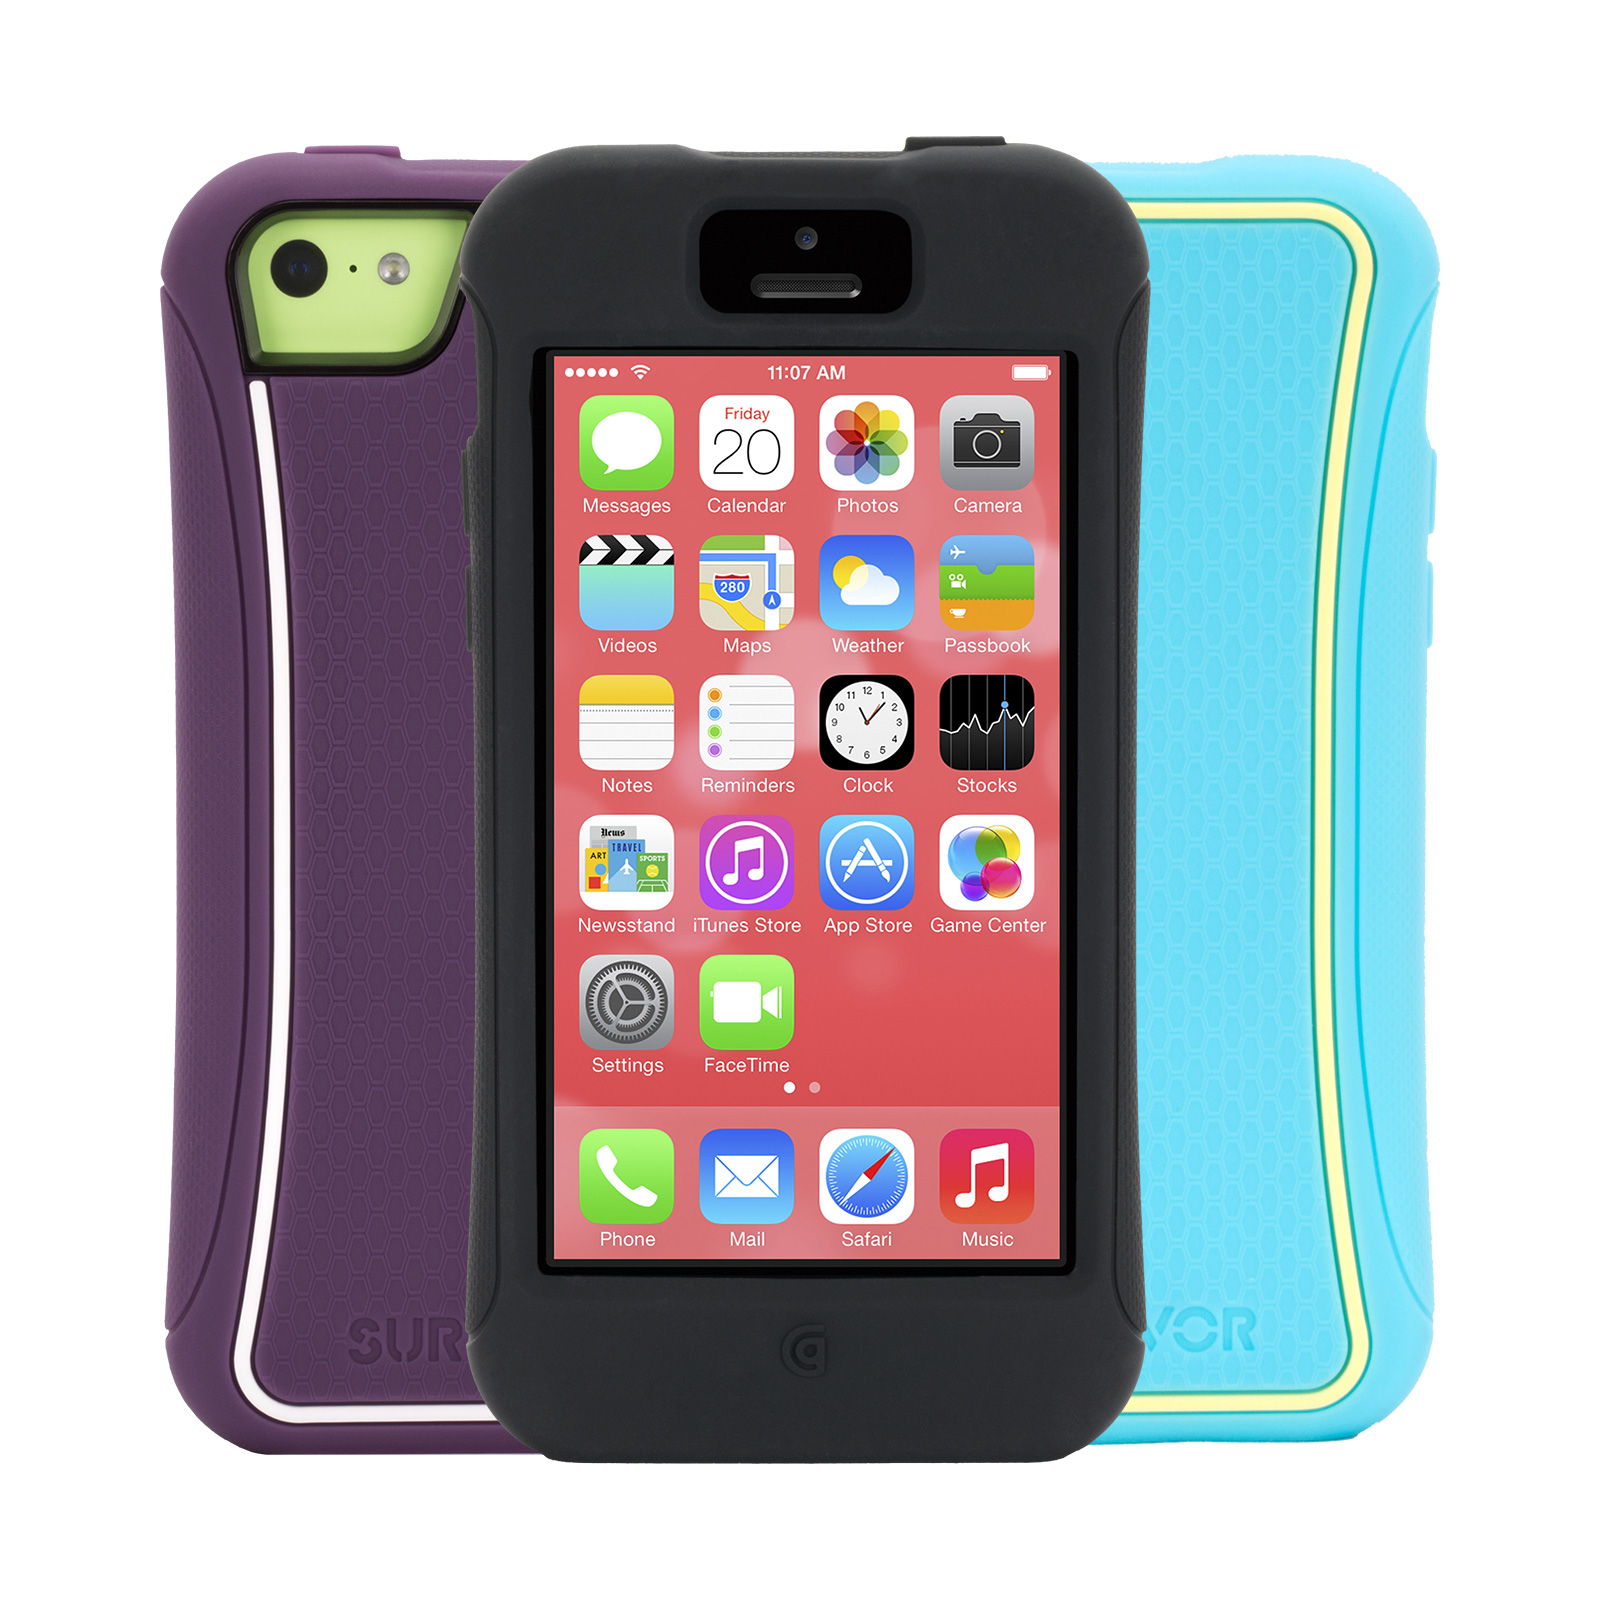 iphone 5 protective case griffin survivor slim protective for iphone 5c 14560